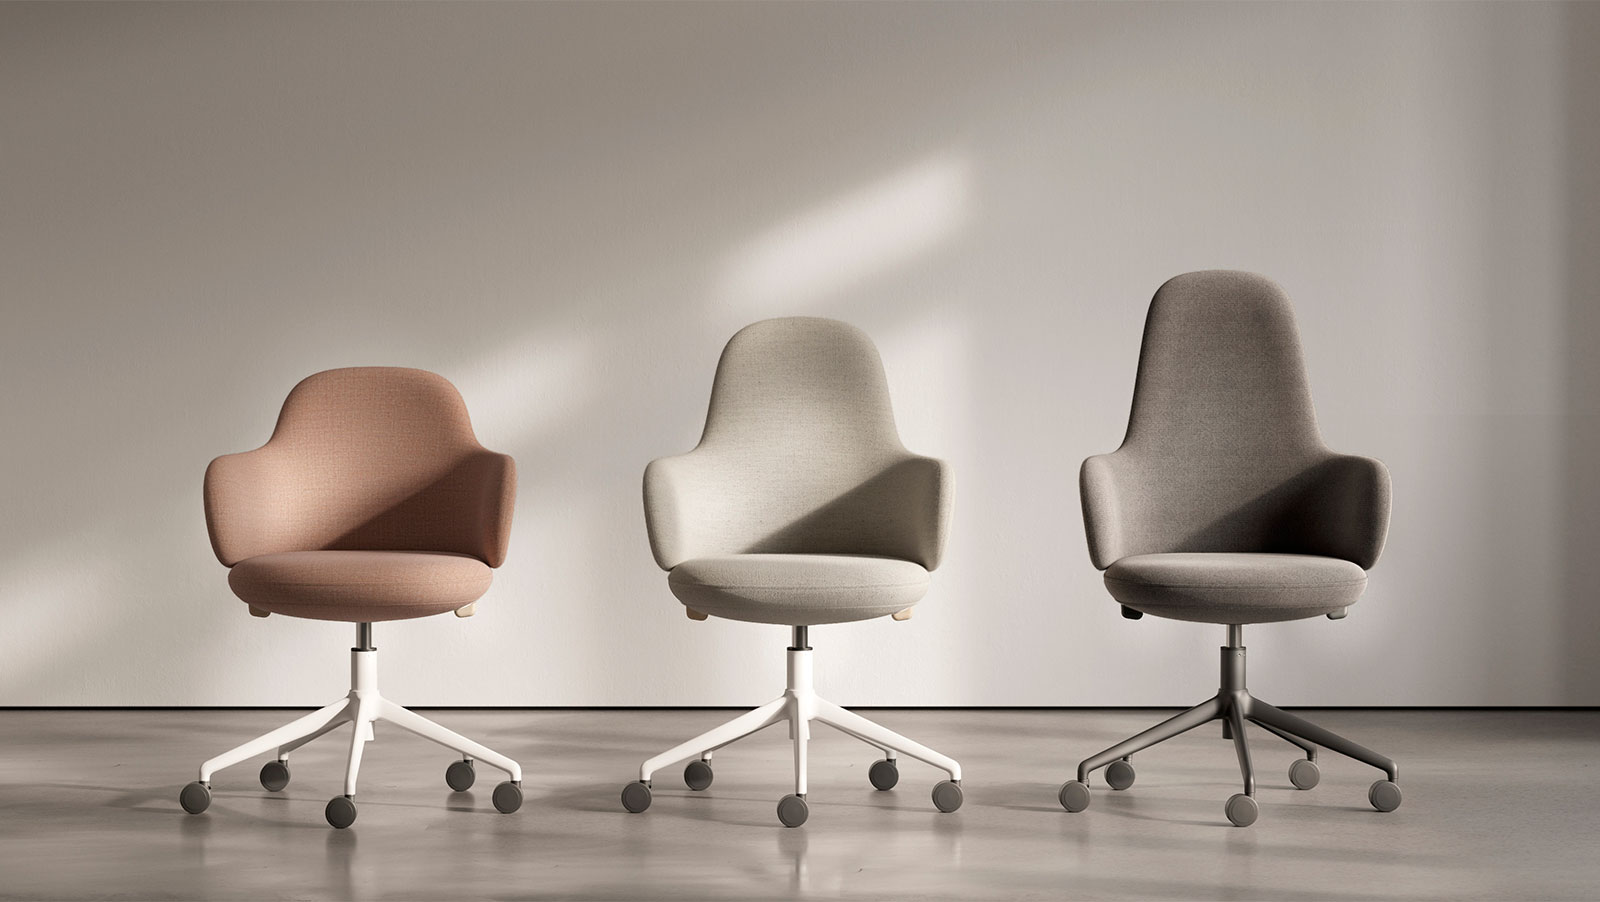 Design-Office-Chair-Lan-Iratzoki-Lizaso-v2